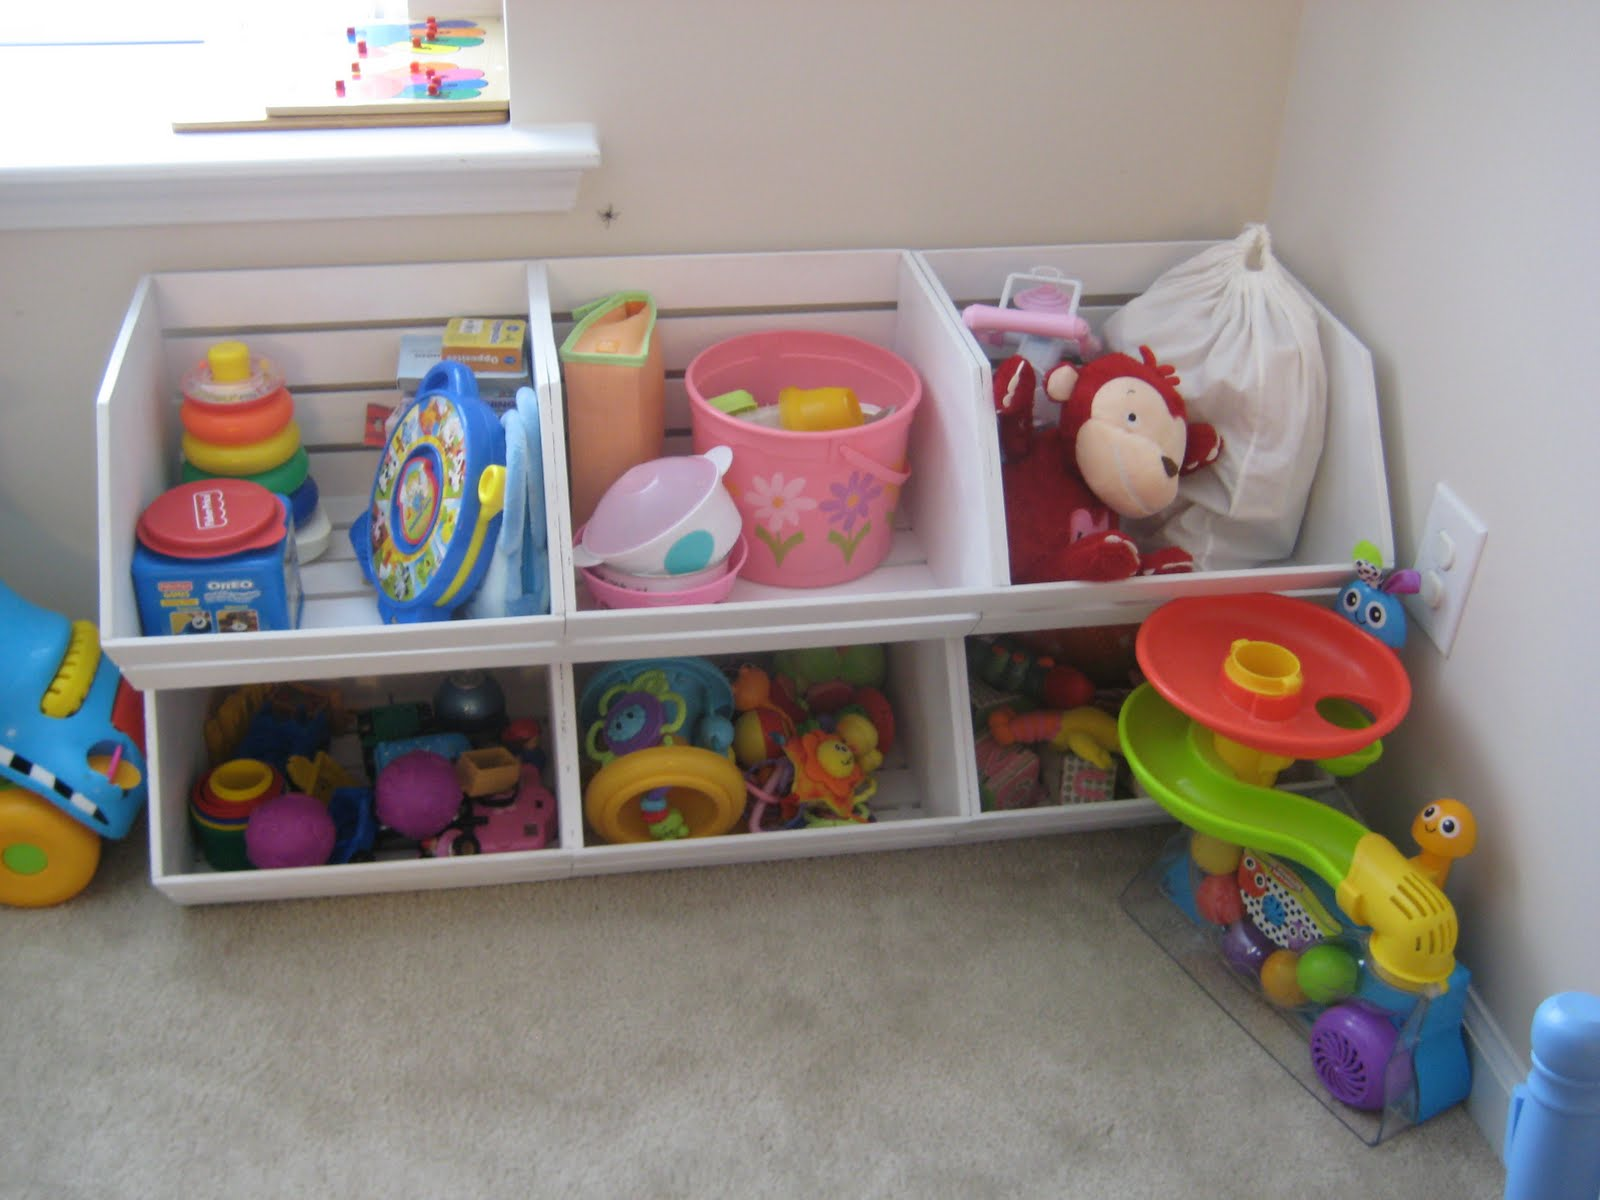 Toy Bin Organizer Kids Childrens Storage Box Playroom: Leaf And Letter Handmade: Pottery Barn Kids-esque Toy Storage